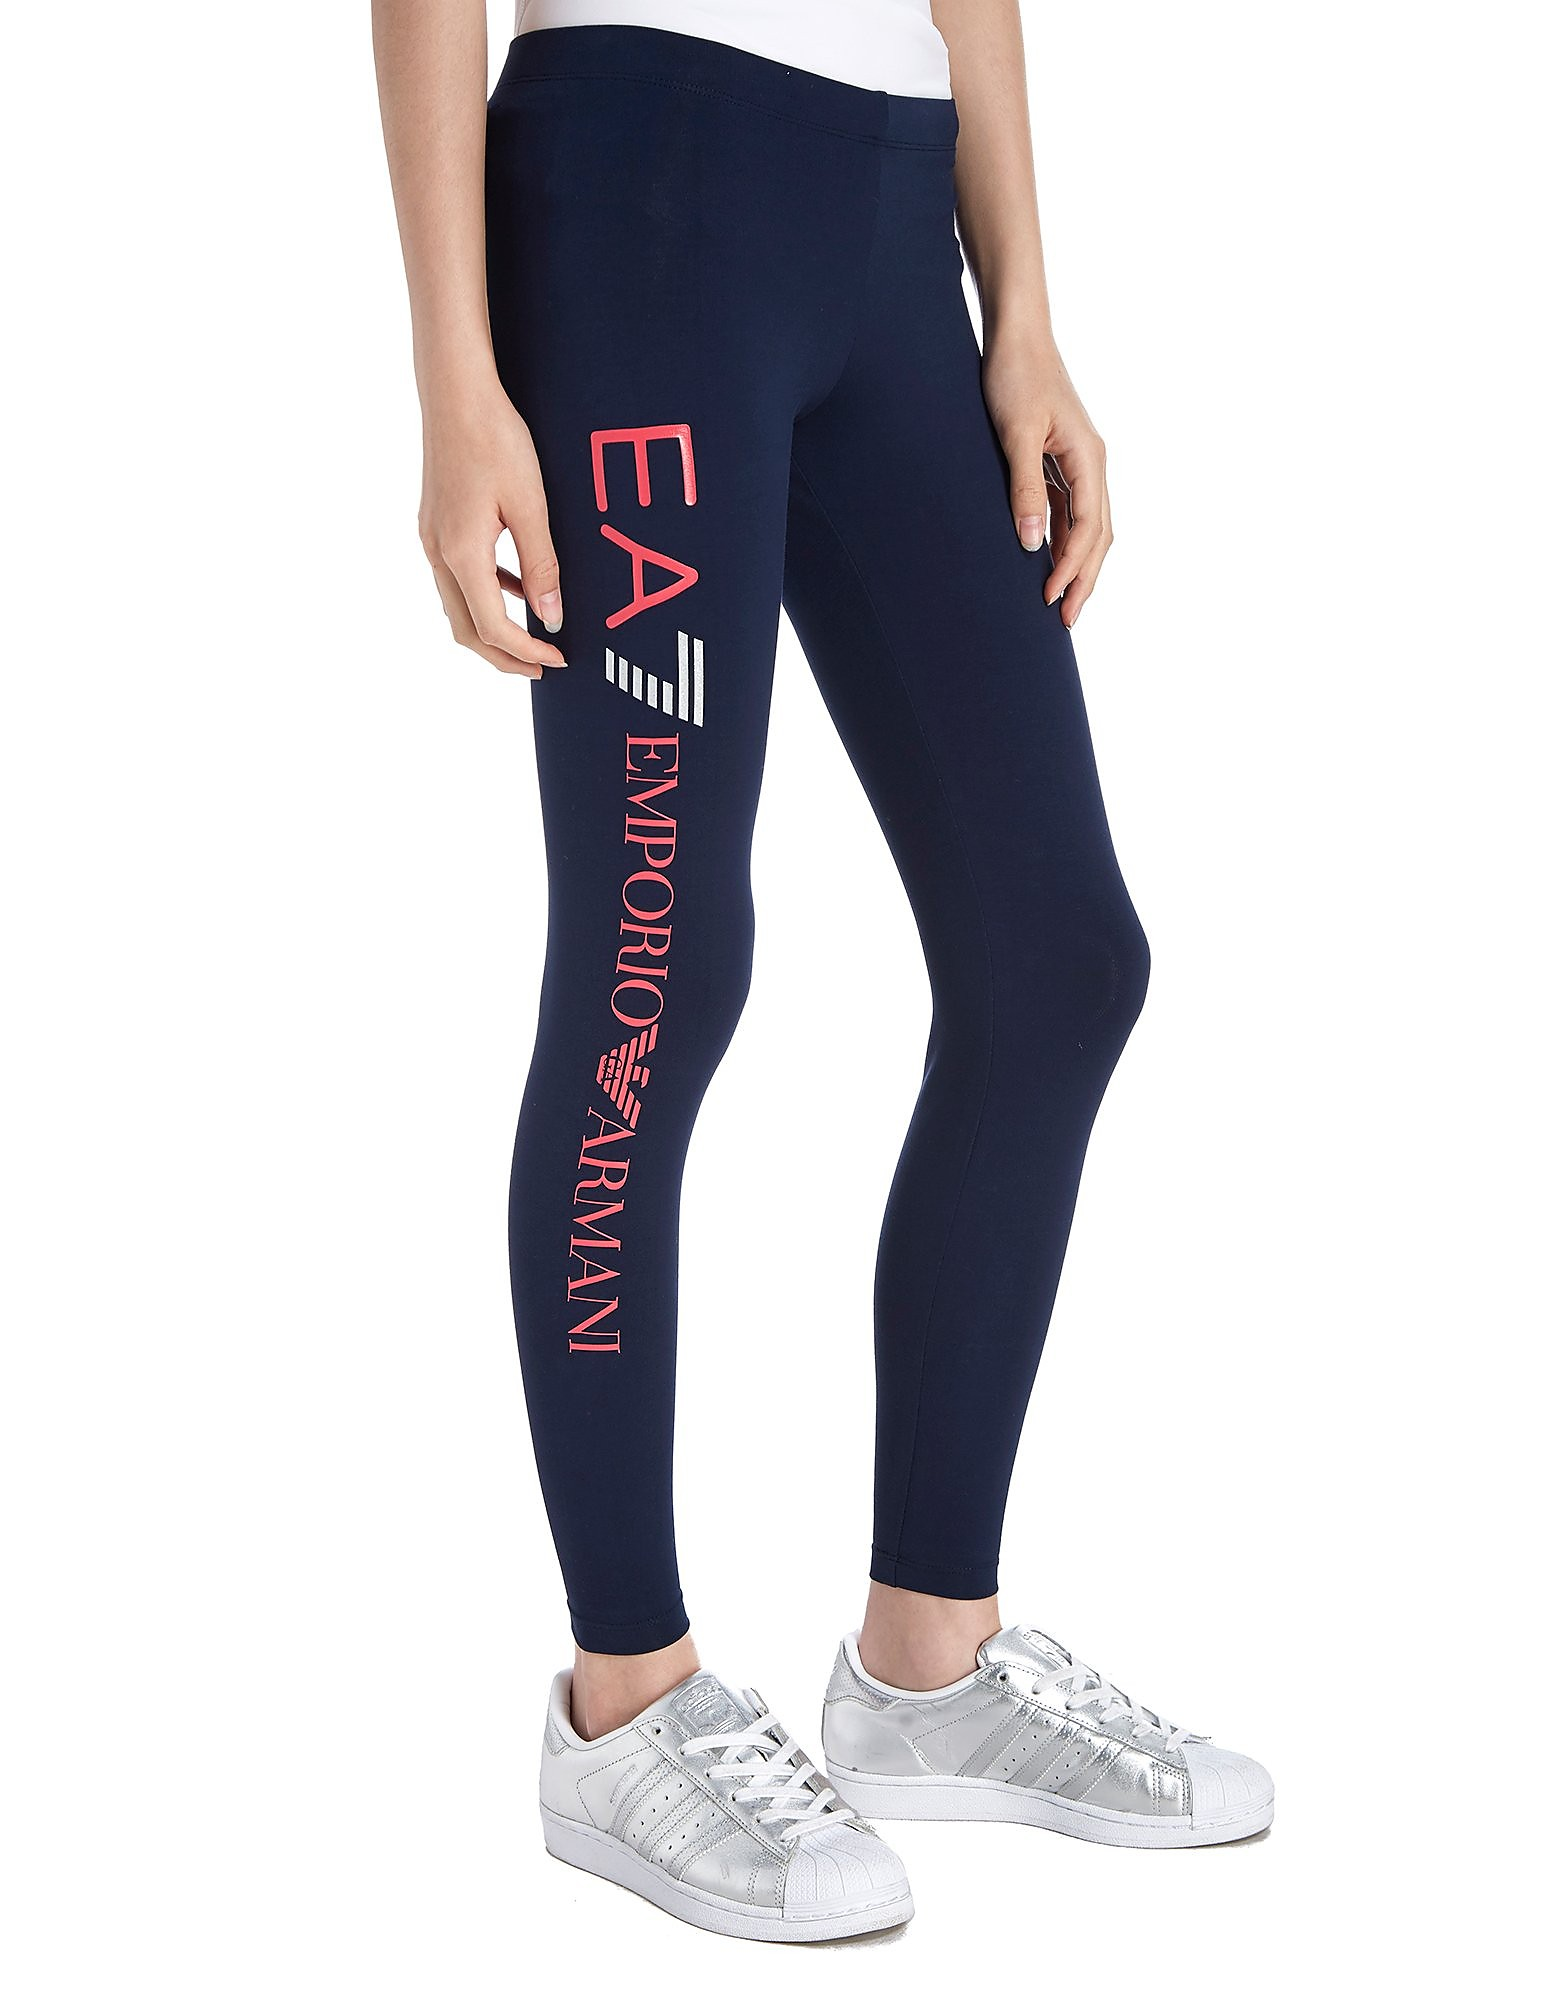 Emporio Armani EA7 Girls' Gloss Legging Junior